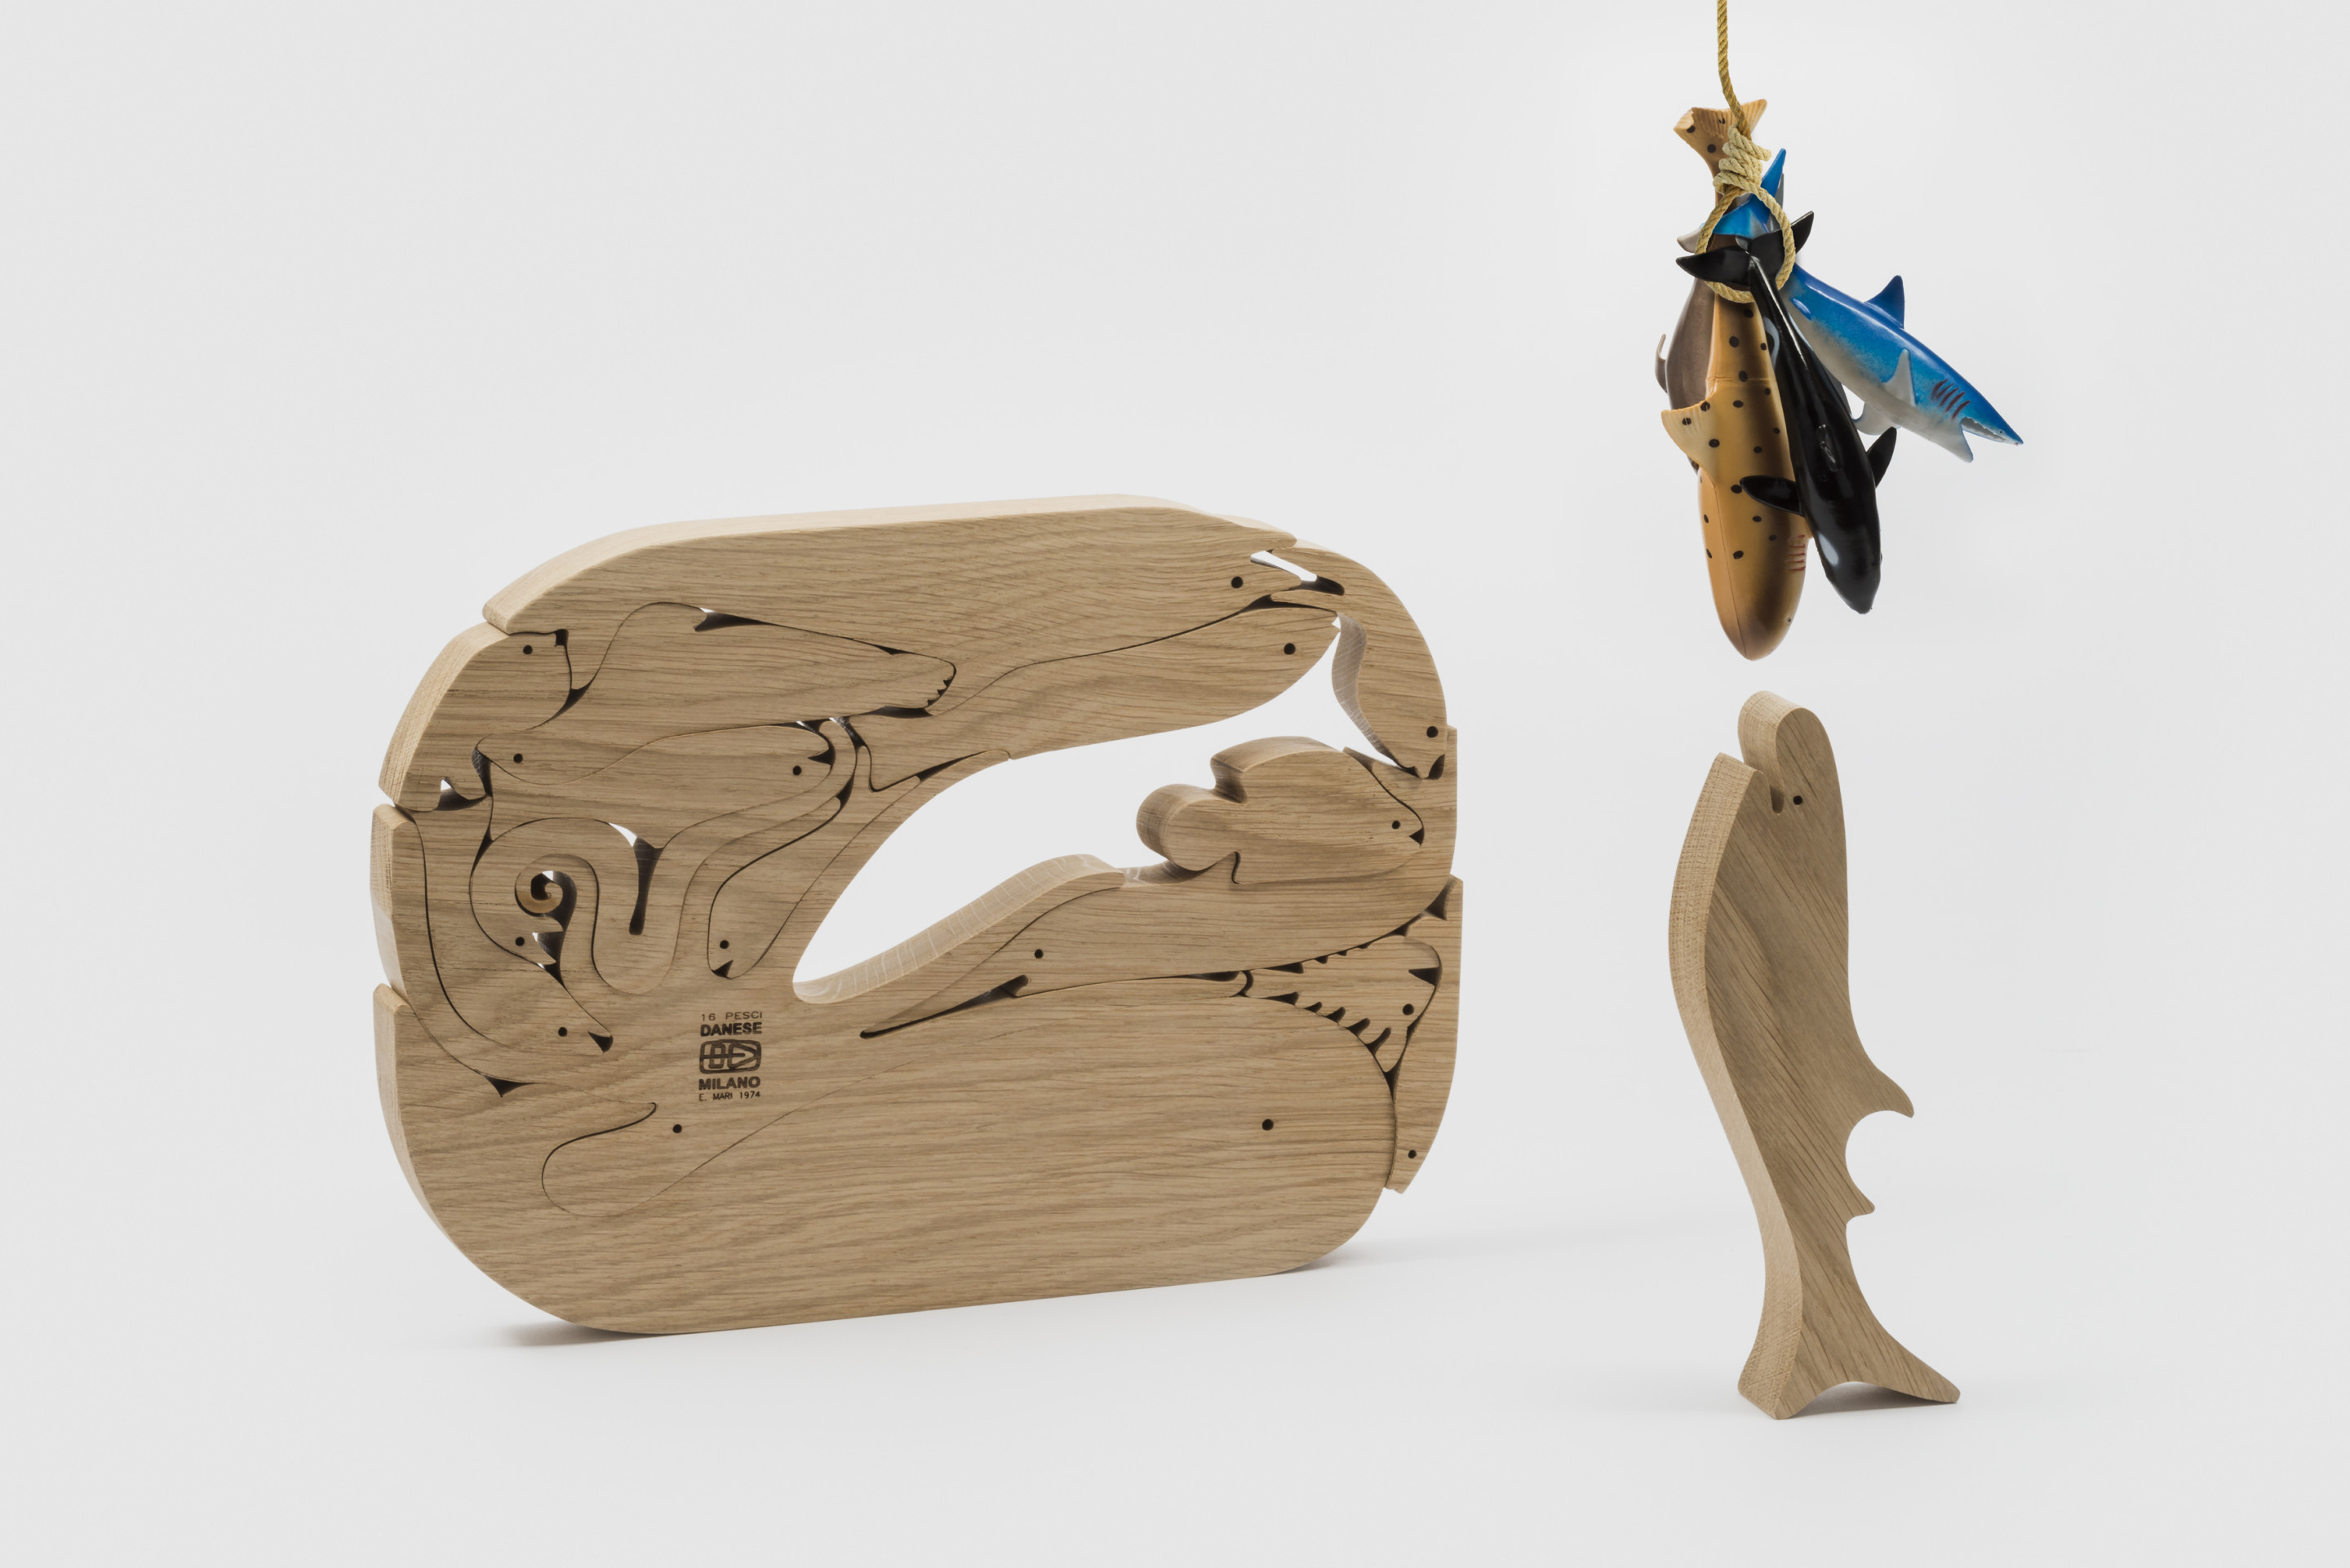 A wooden block puzzle designed by Enzo mari consisting of interlocking fish